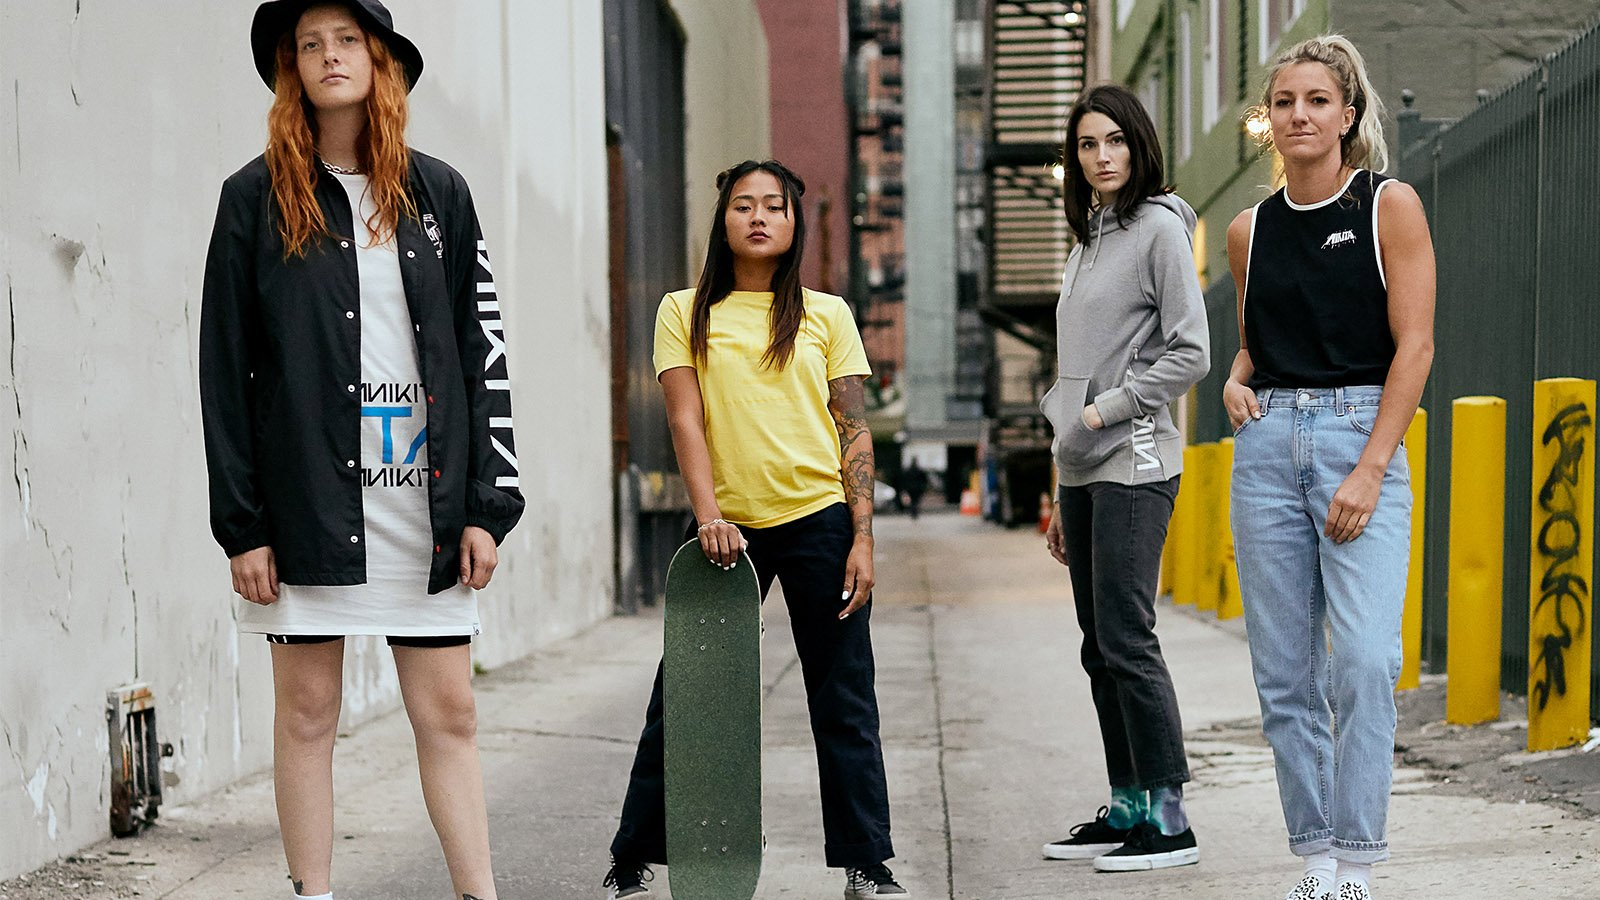 Nikita SS20 Women's Streetwear Preview